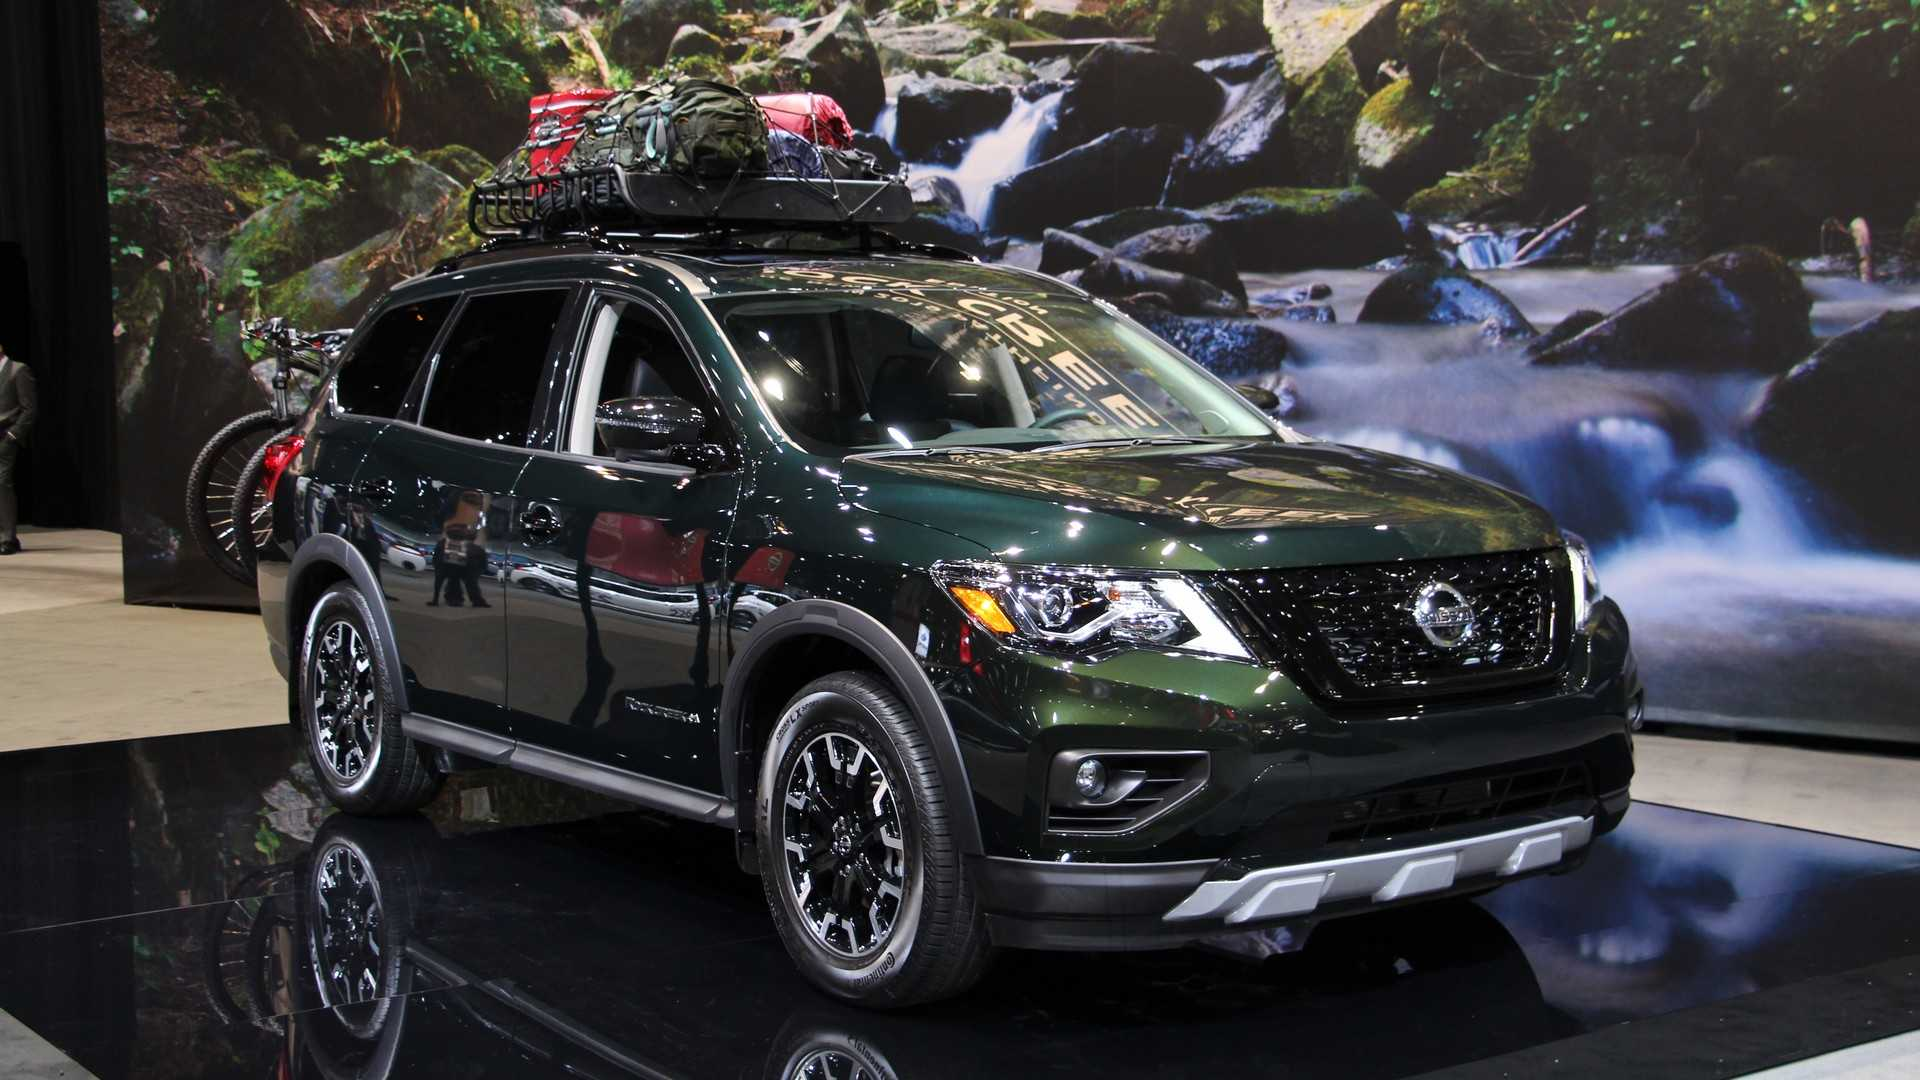 2019 Nissan Pathfinder Rock Creek Edition: Live From The Chicago Auto Show